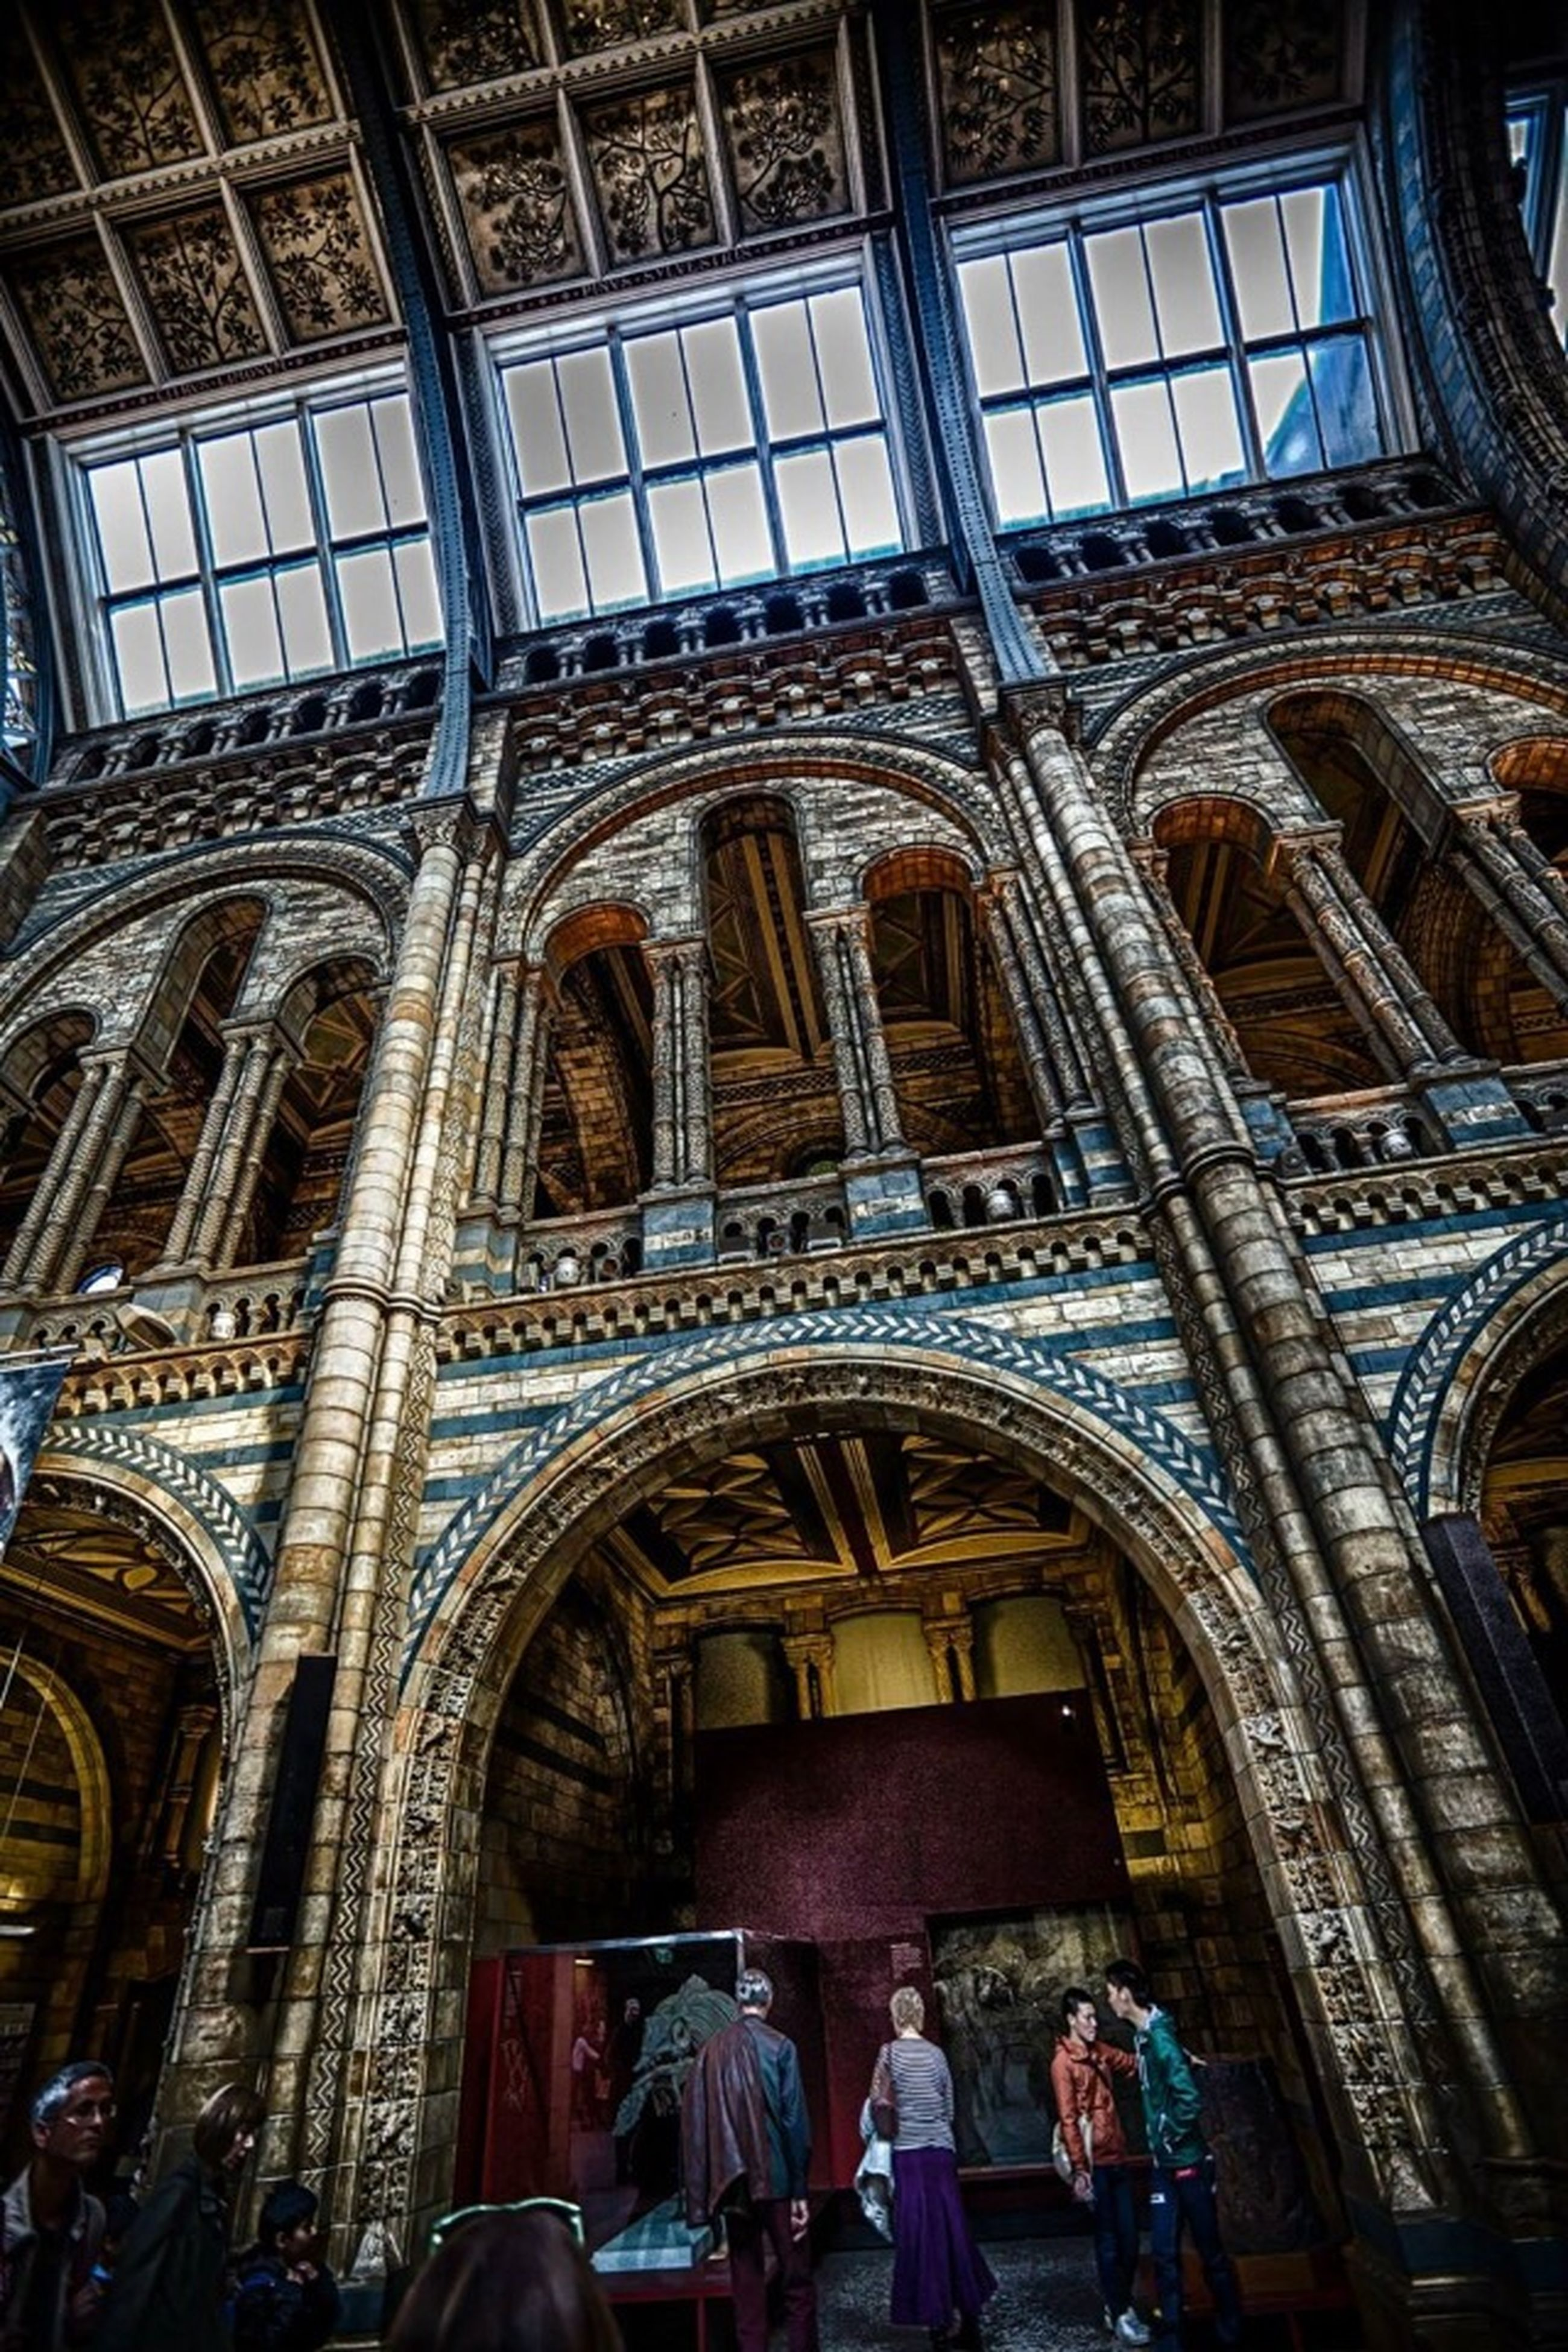 architecture, indoors, built structure, arch, men, large group of people, travel, lifestyles, person, famous place, travel destinations, tourism, leisure activity, history, ceiling, tourist, interior, low angle view, international landmark